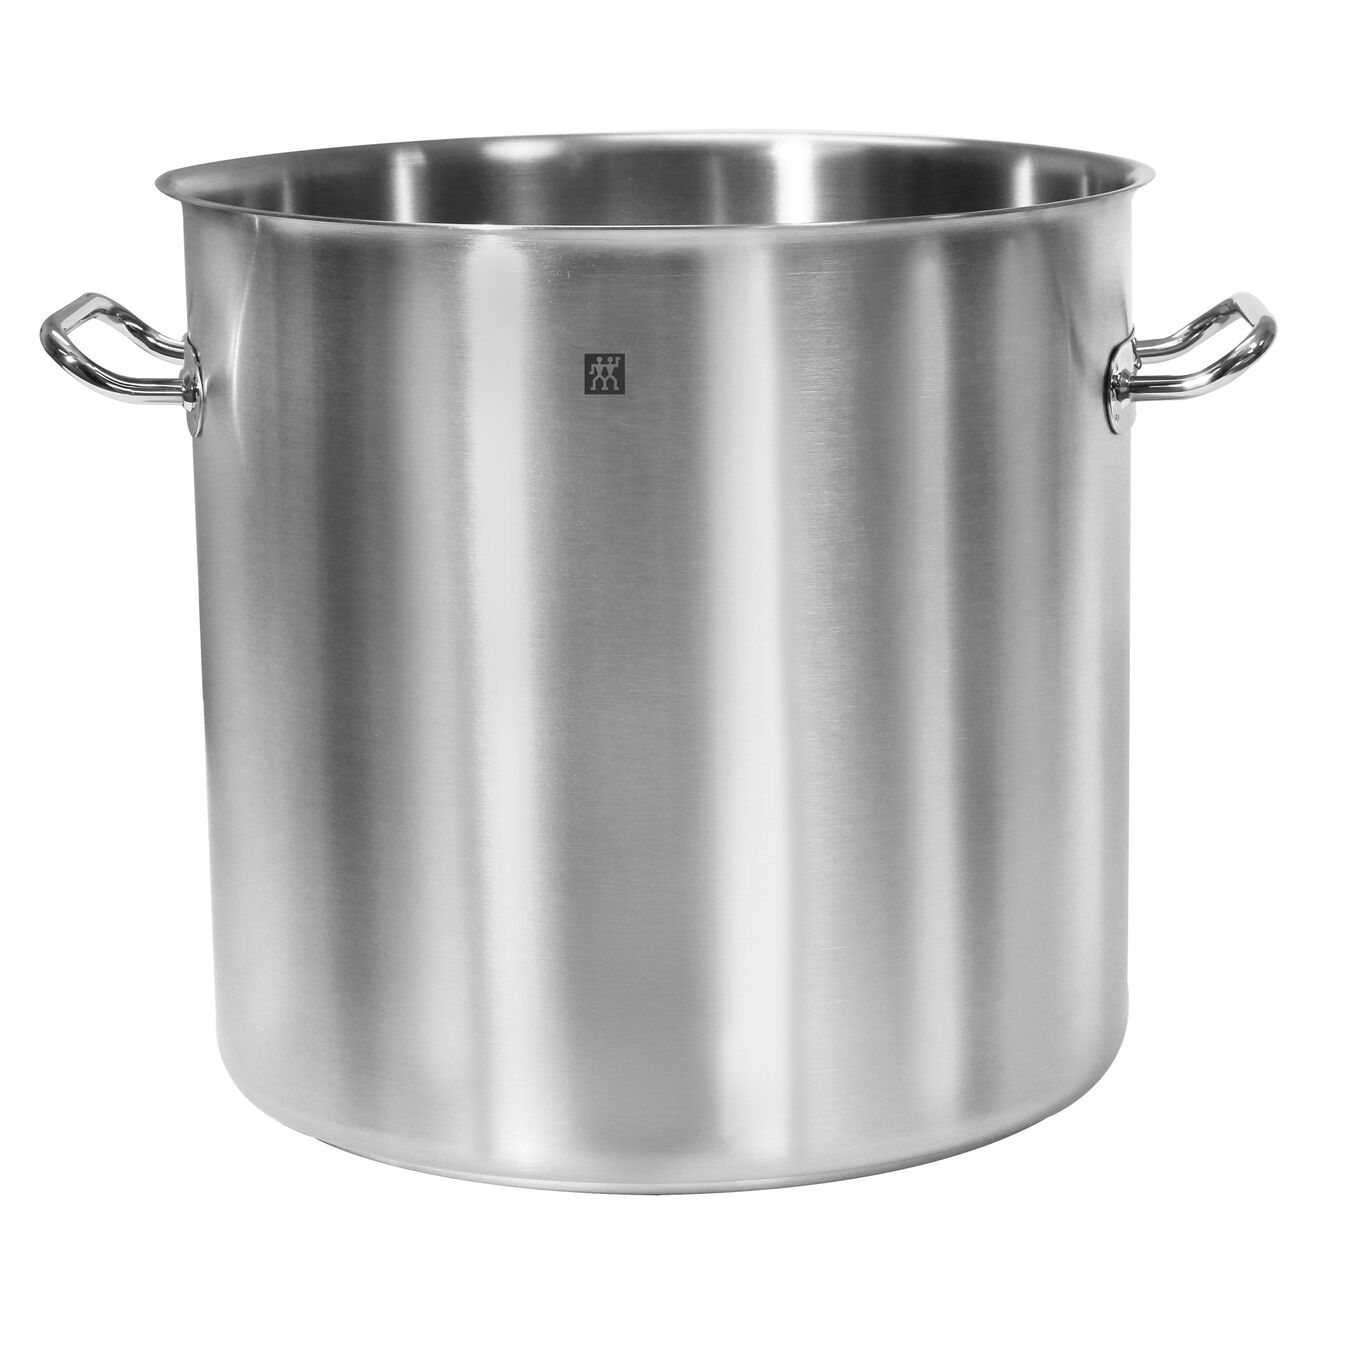 0.1 ml 18/10 Stainless Steel Stock pot,,large 1